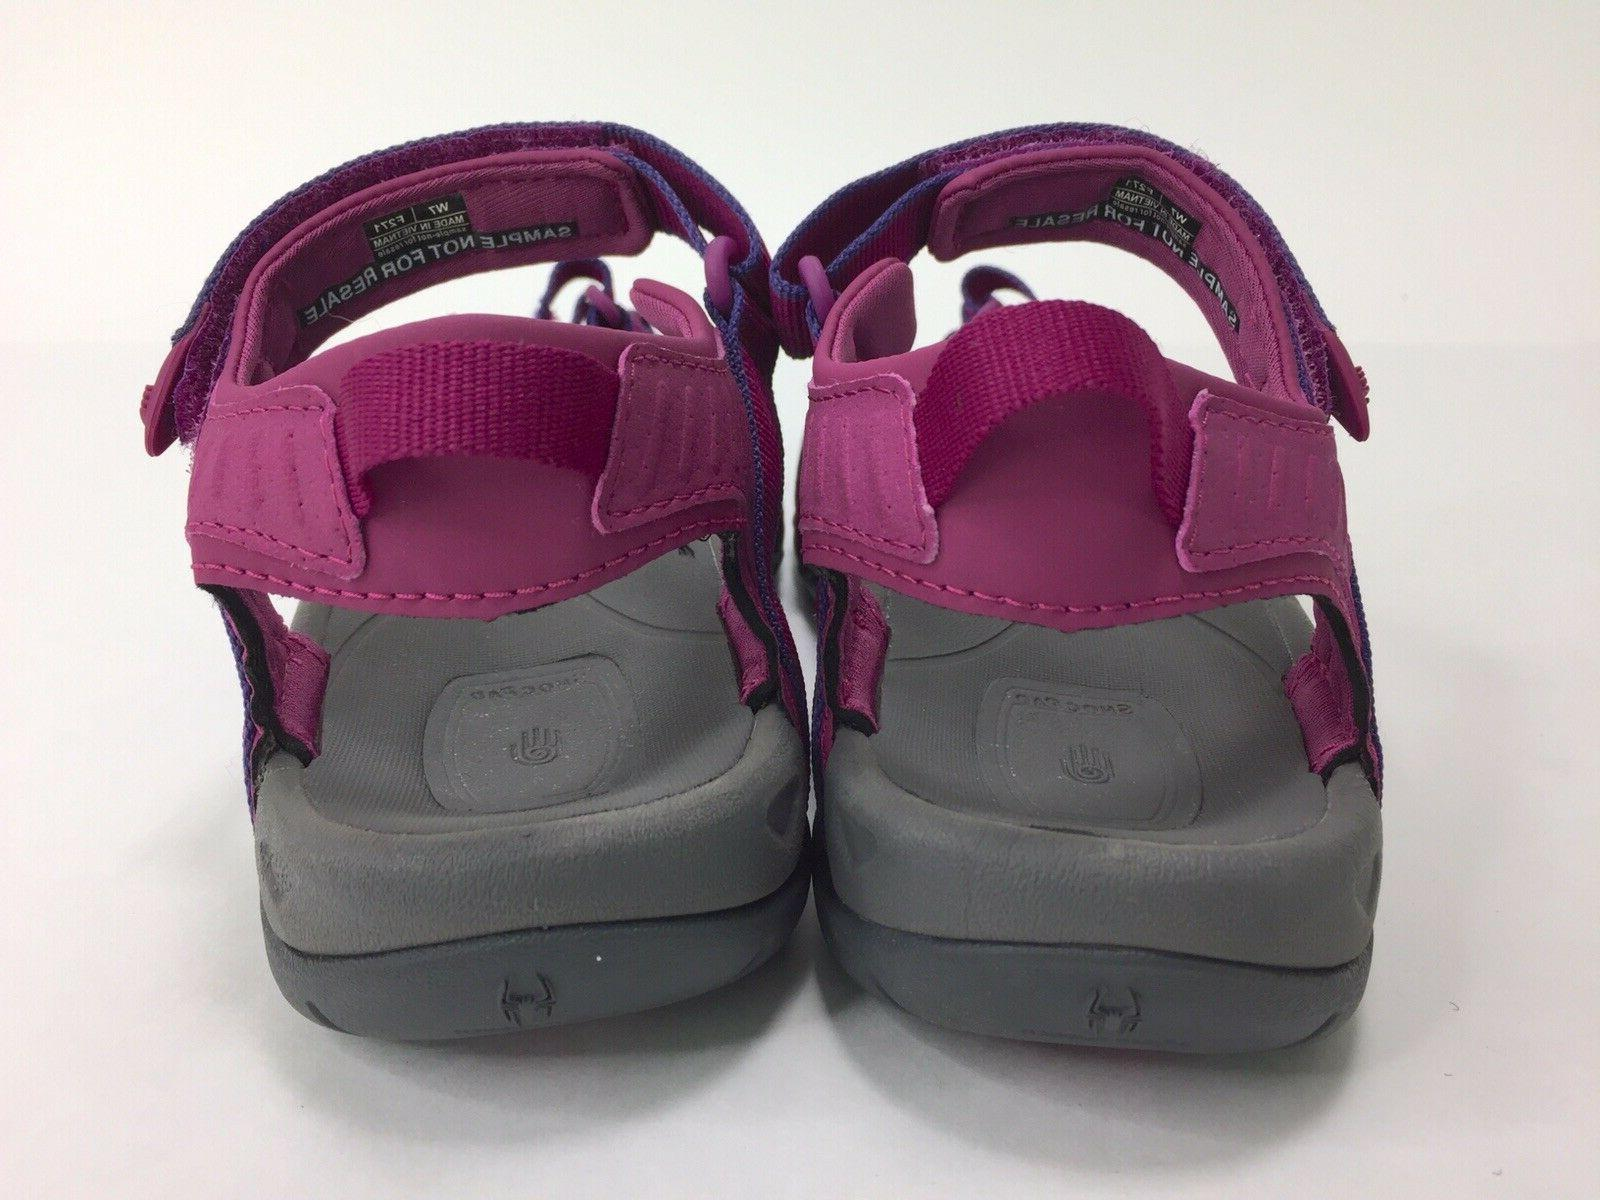 New! Women's Tirra Hiking Sandals Size Purple Pink Water